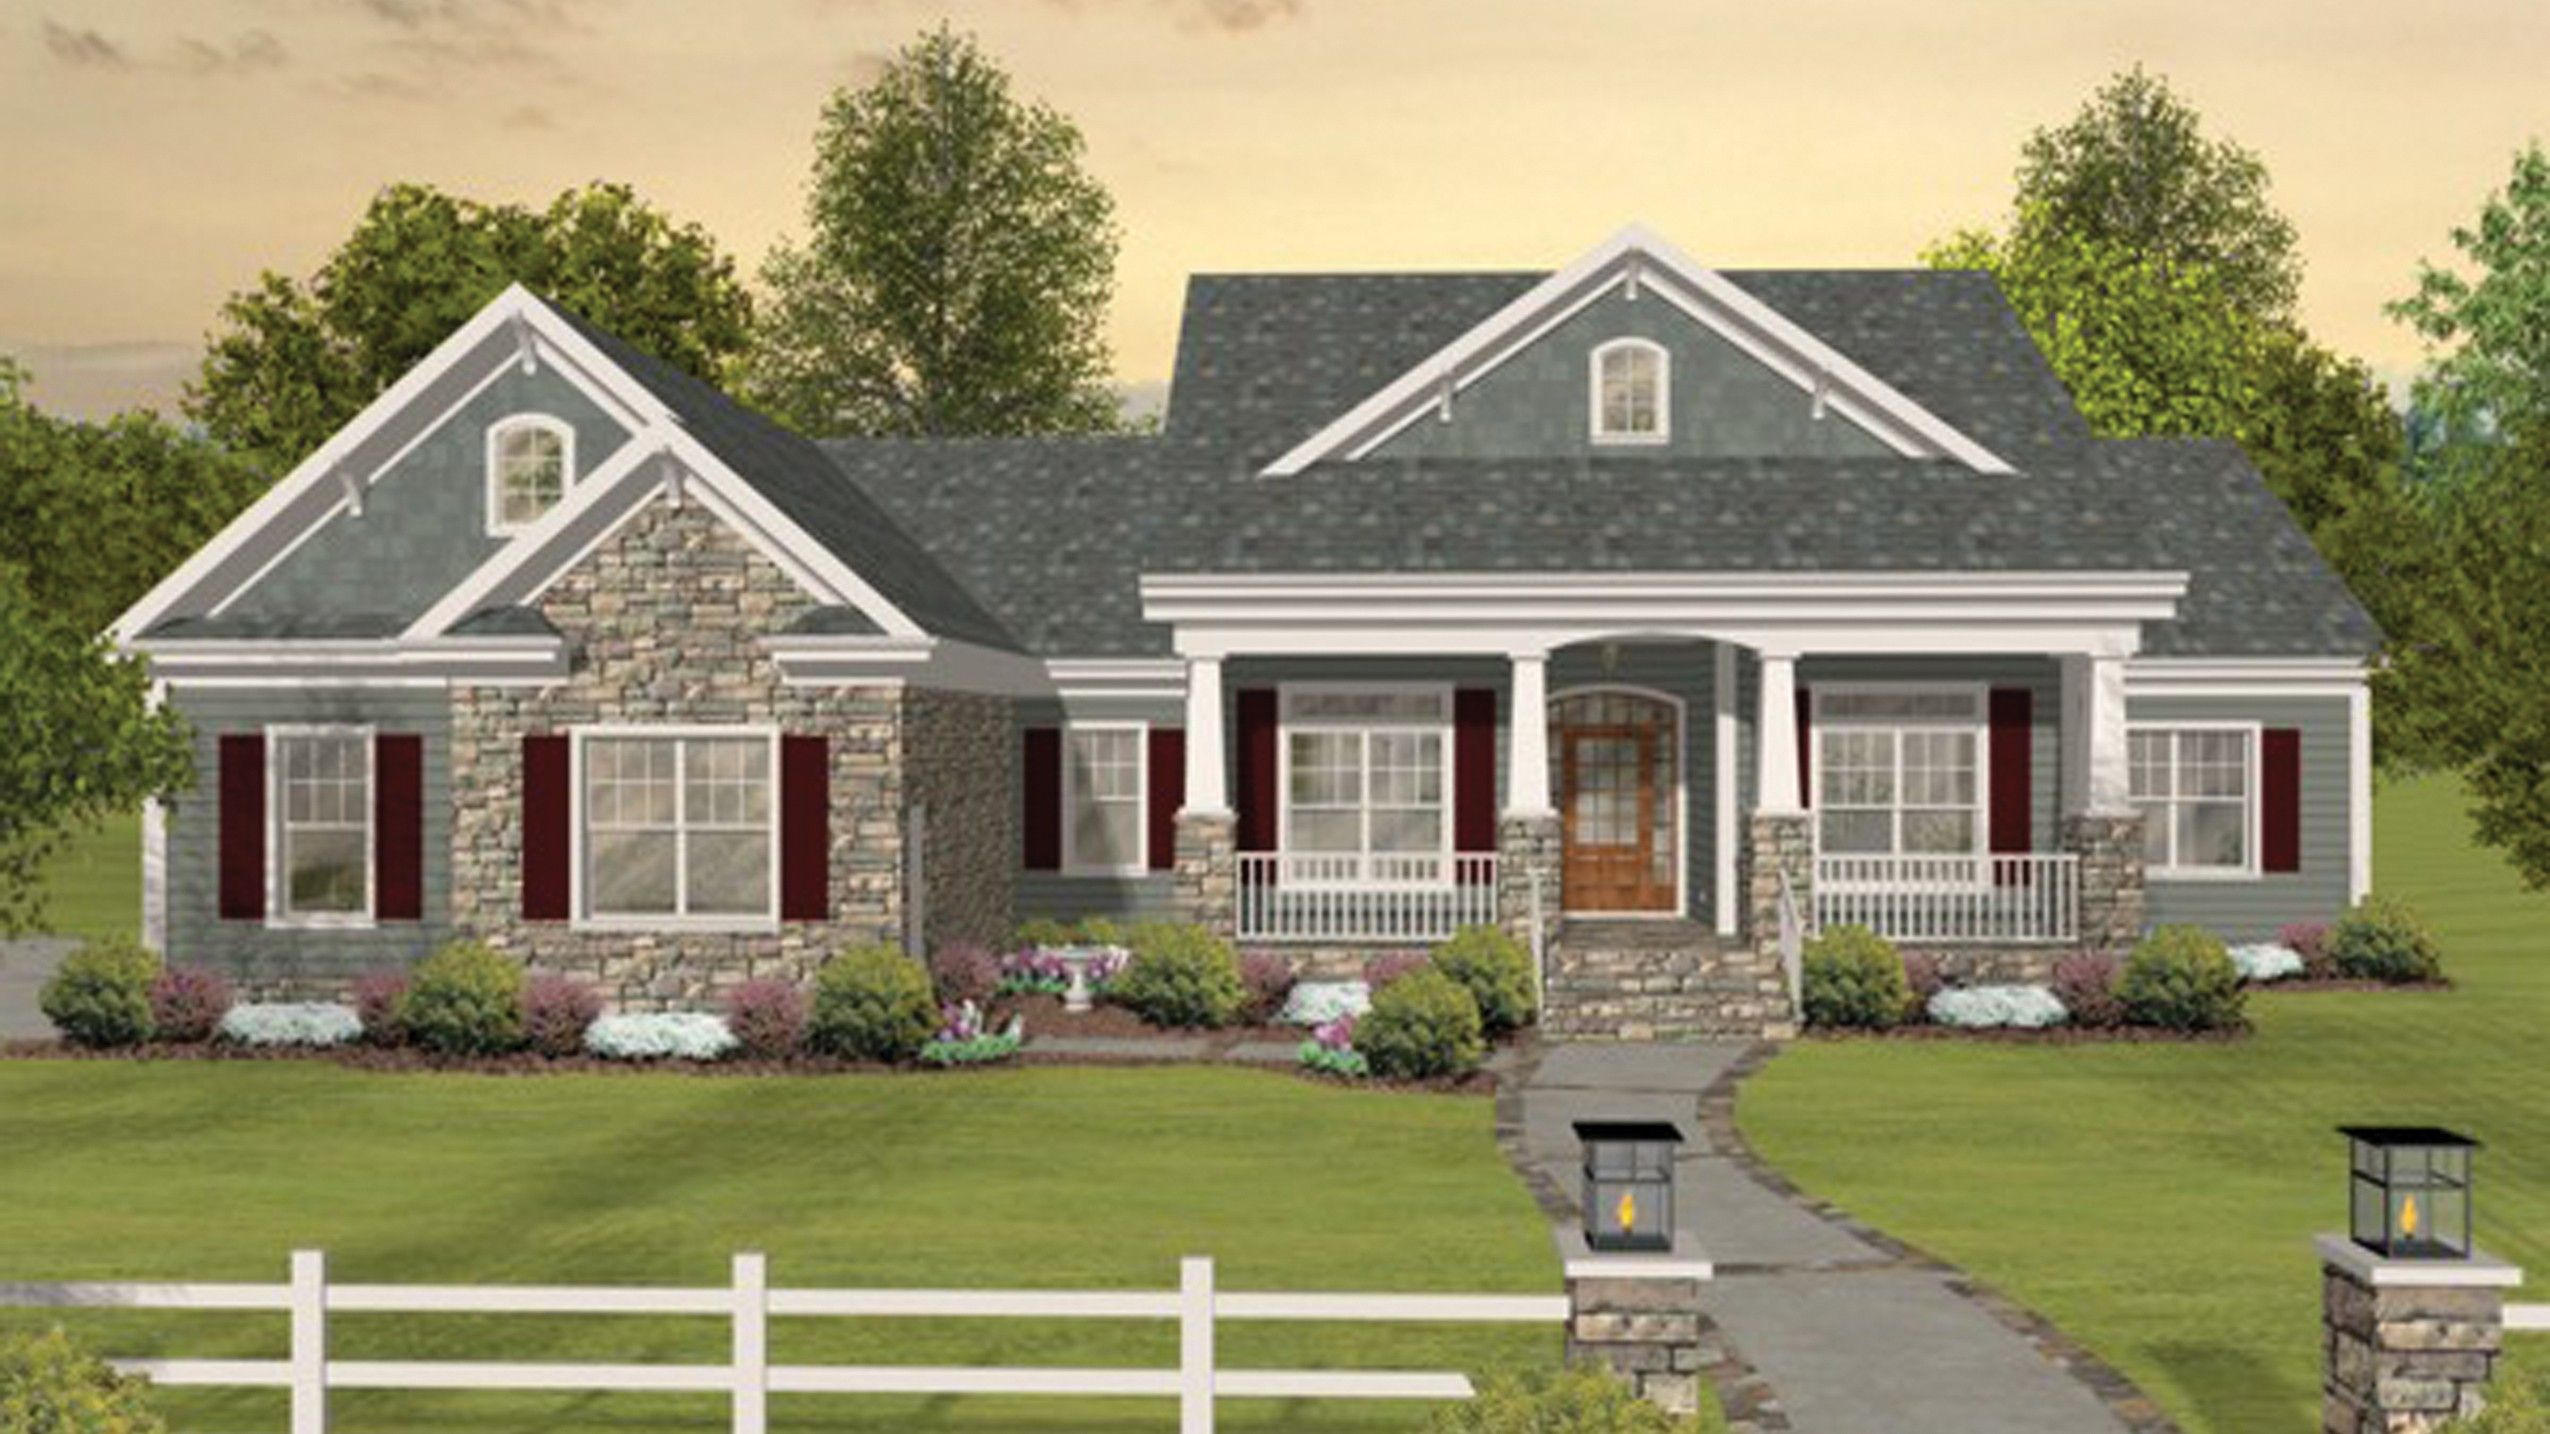 Home plan homepw03117 2156 square foot 3 bedroom 3 for Home plan com